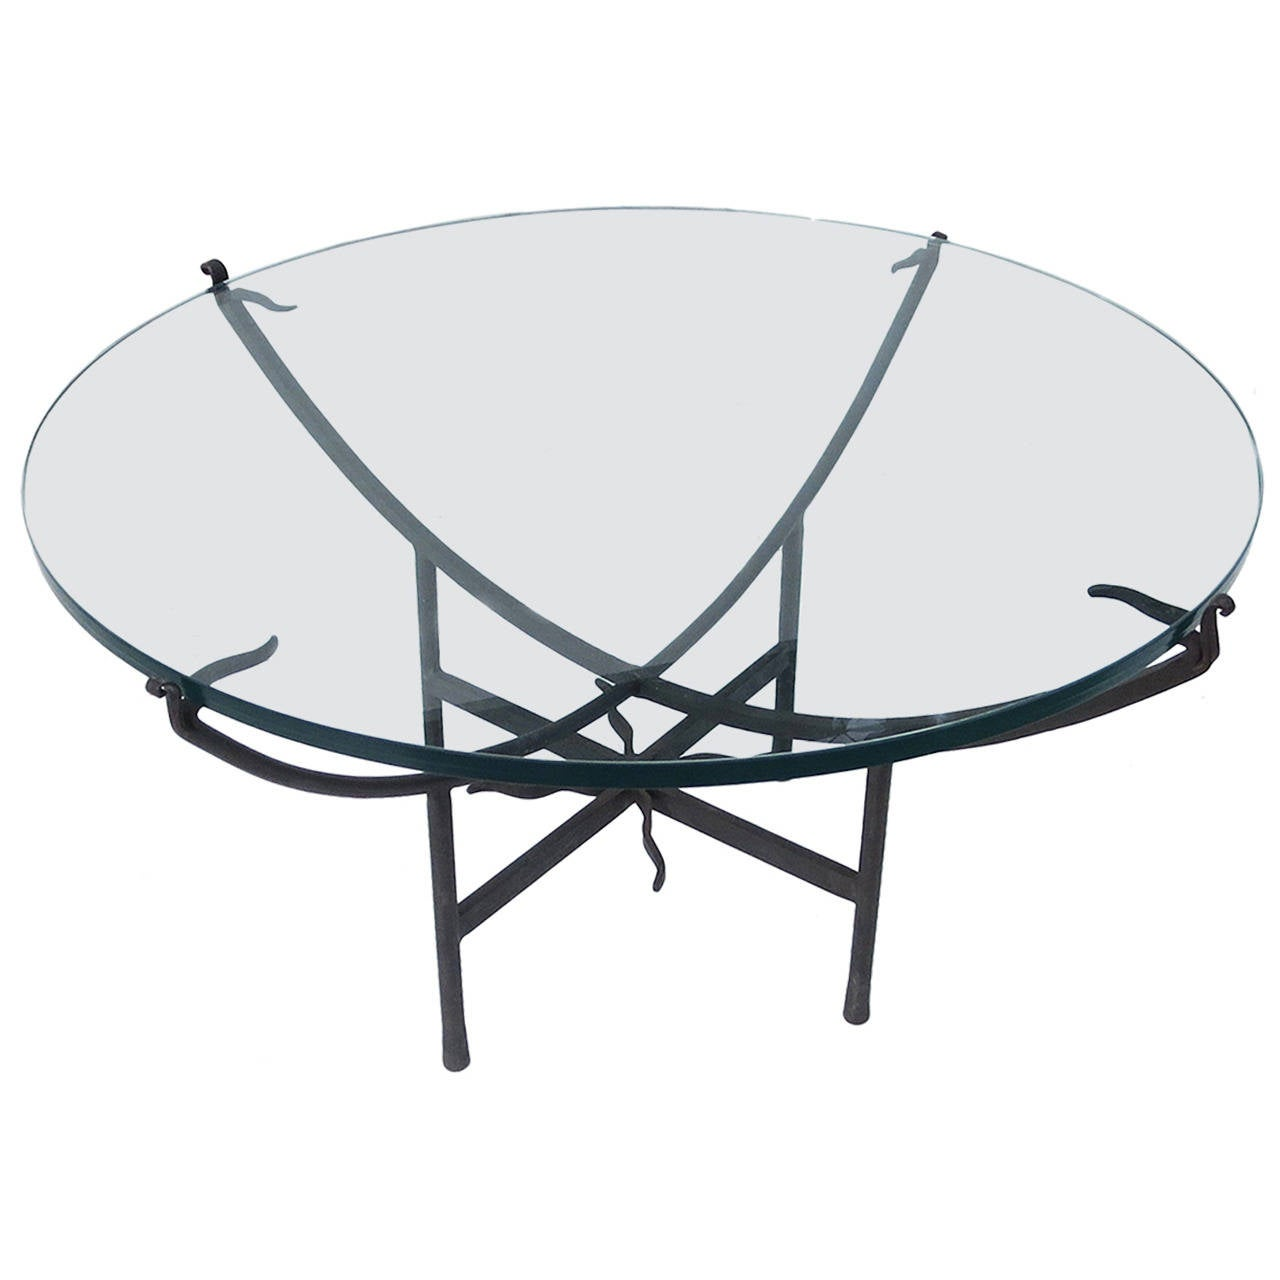 Elegantly Tasteful Iron And Glass Coffee Table For Sale At 1stdibs